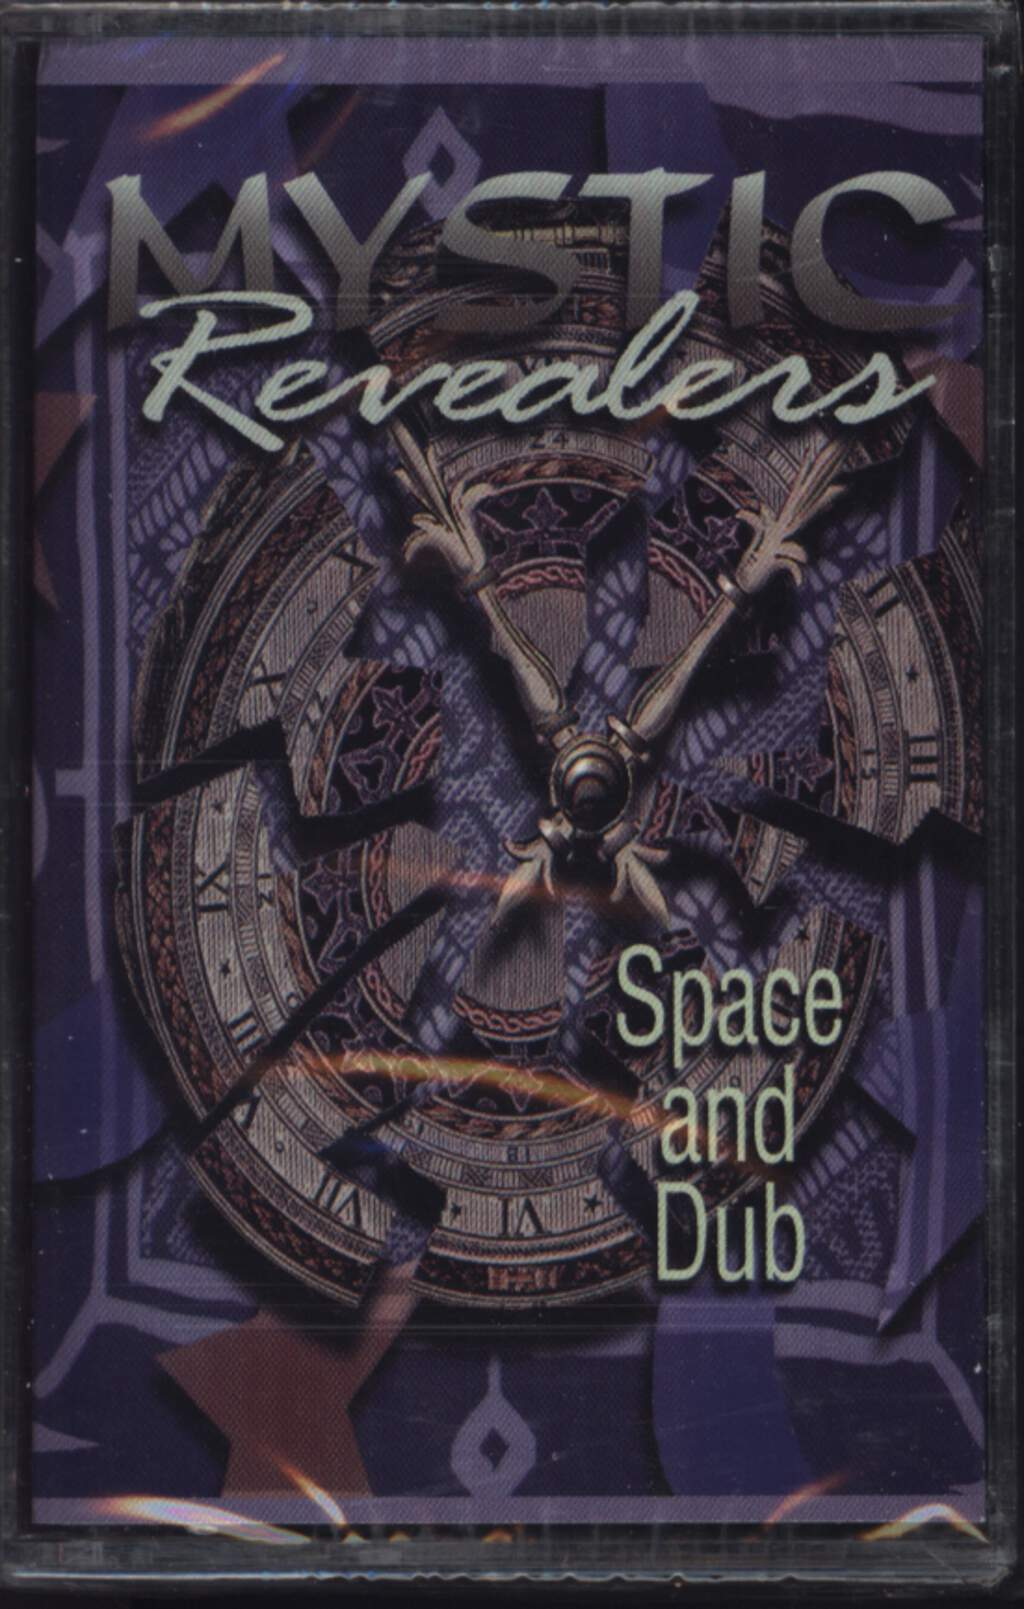 Mystic Revealers: Space And Dub, Tape